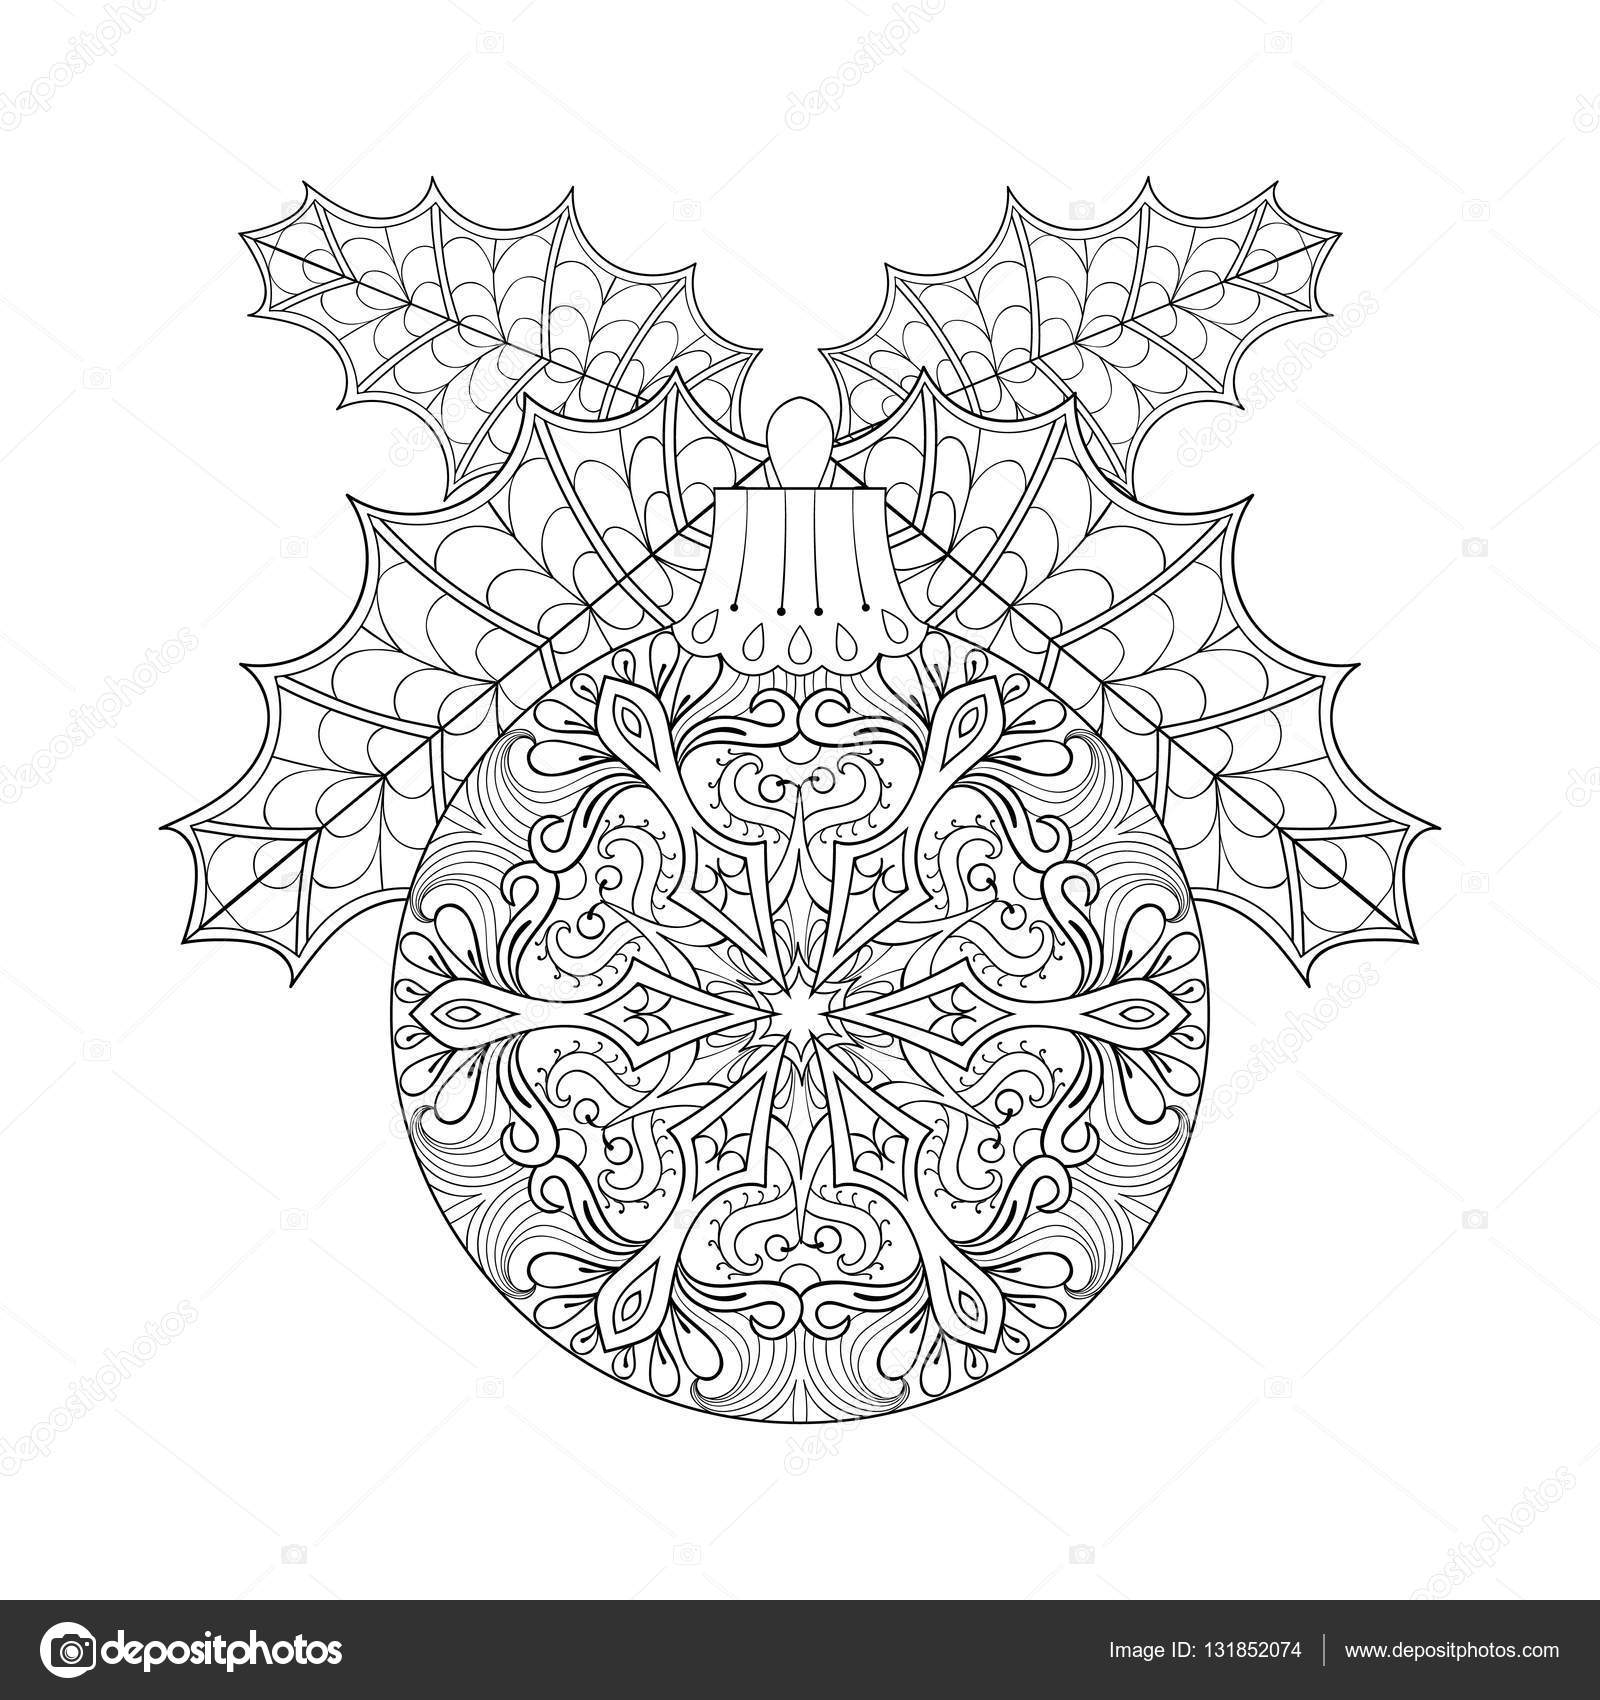 Vector vintage christmas ball with mistletoe new year 2017 vector vintage christmas ball with mistletoe new year 2017 freehand decoration element artistic patterned buycottarizona Image collections